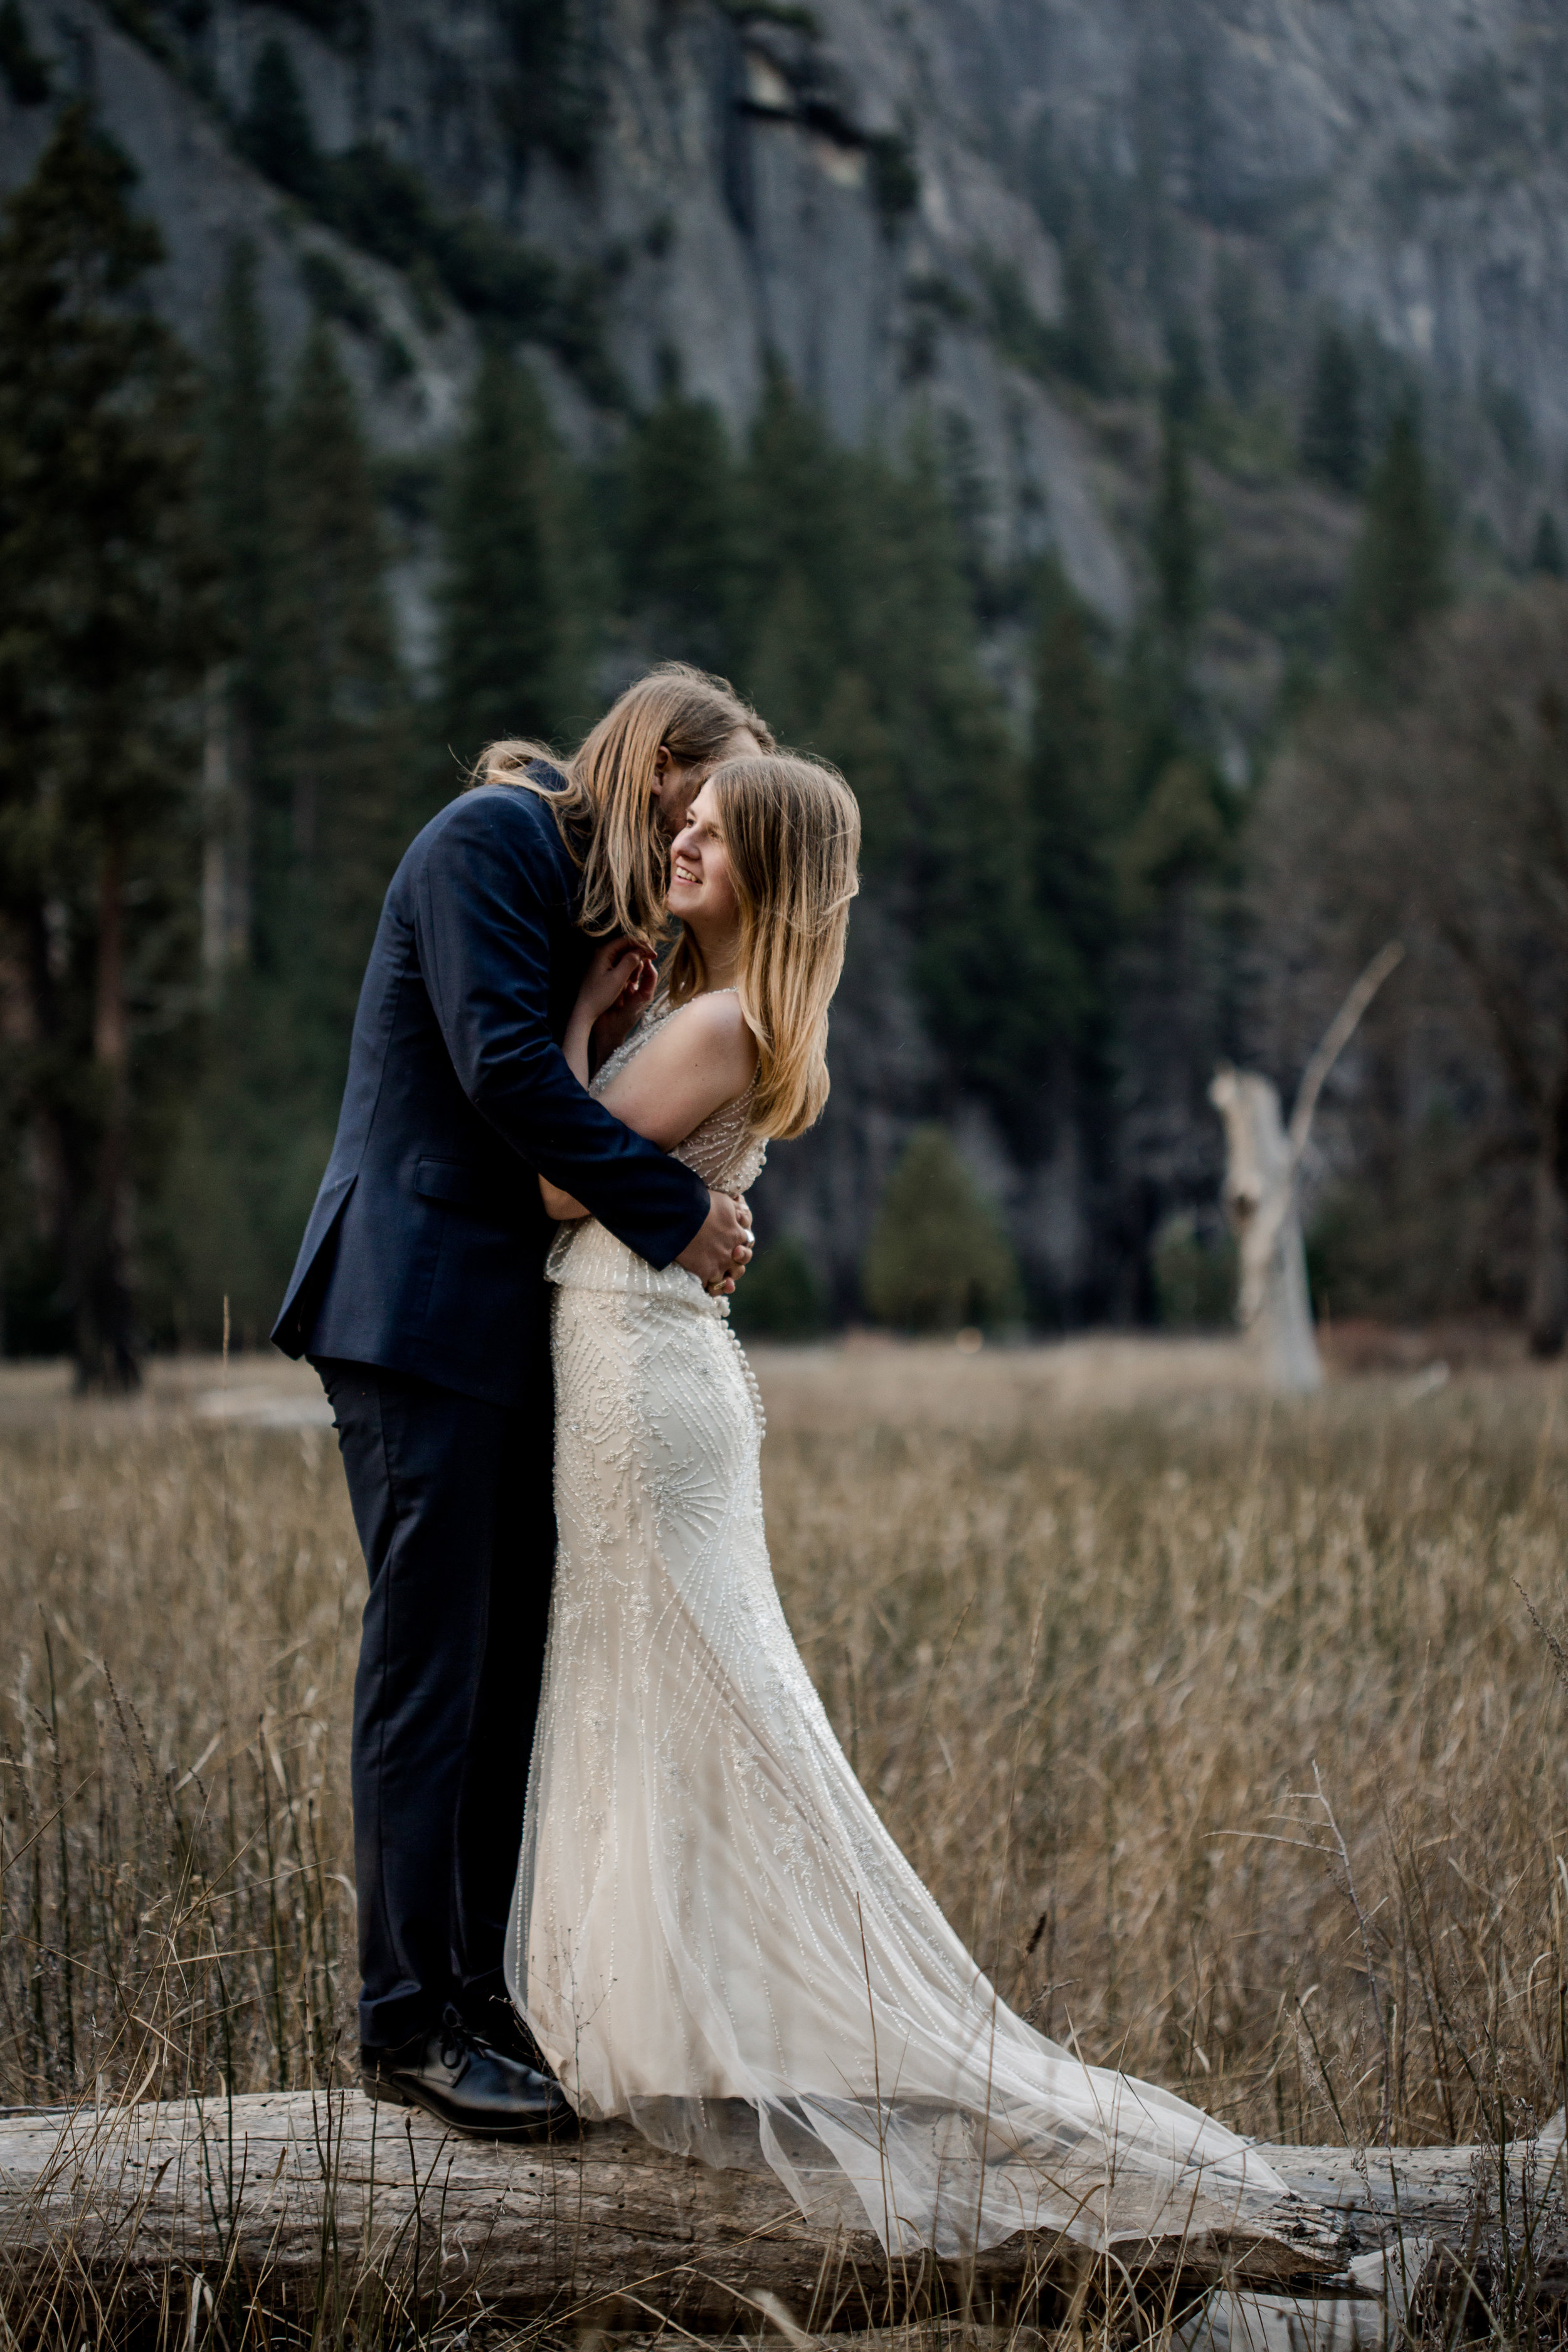 nicole-daacke-photography-yousemite-national-park-elopement-photographer-winter-cloud-moody-elope-inspiration-yosemite-valley-tunnel-view-winter-cloud-fog-weather-wedding-photos-80.jpg